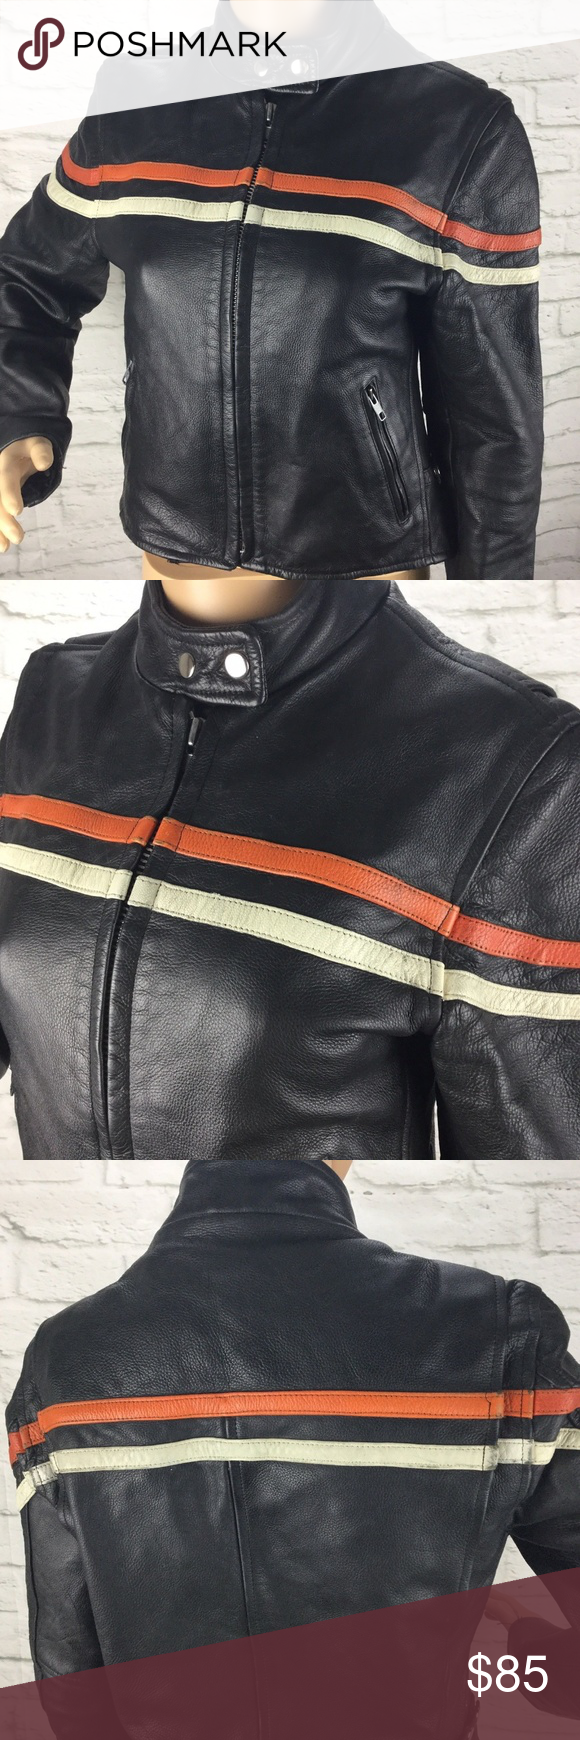 Interstate Leather Motorcycle Jacket S Leather Motorcycle Jacket Jackets Leather Fashion [ 1740 x 580 Pixel ]